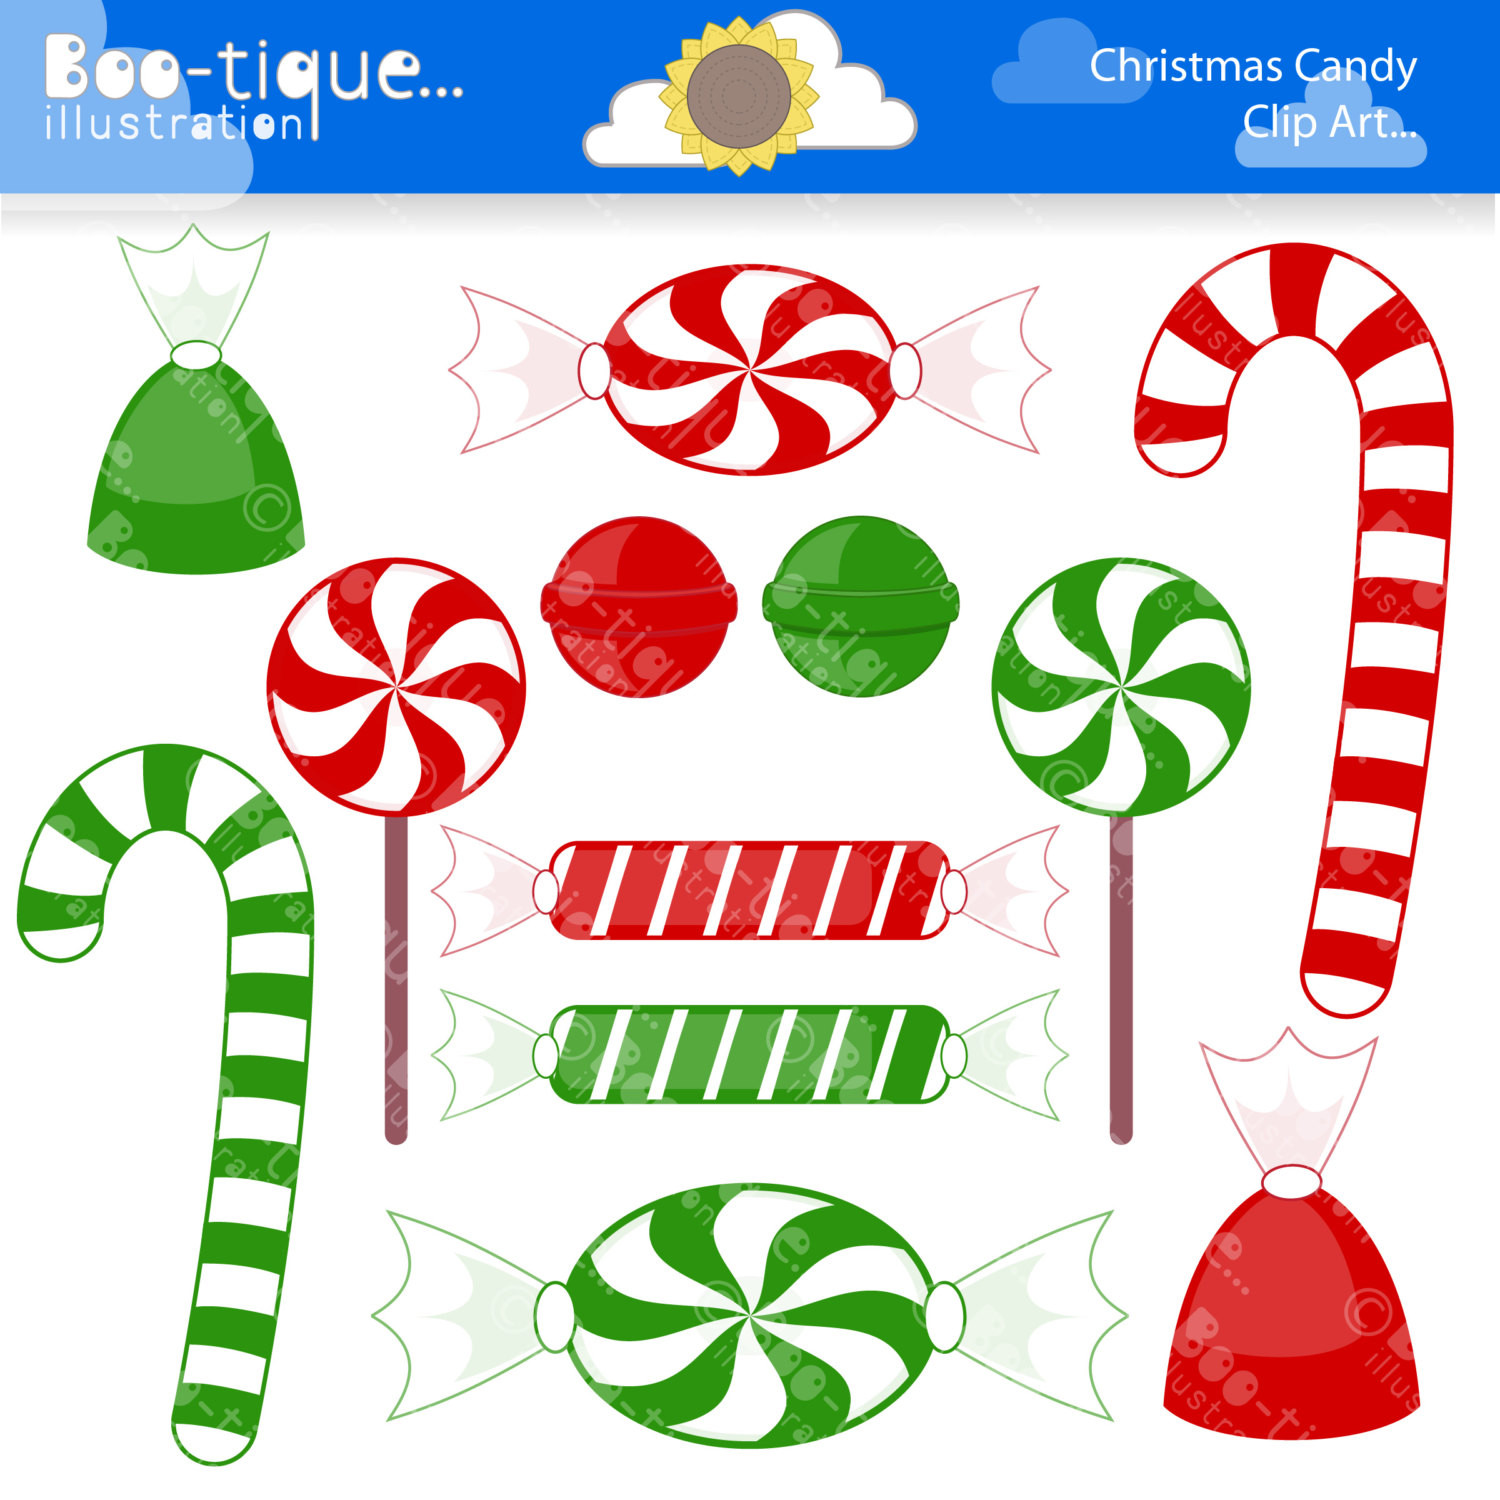 Christmas Candy Clip Art  Christmas Candy Digital Clipart for Instant Download